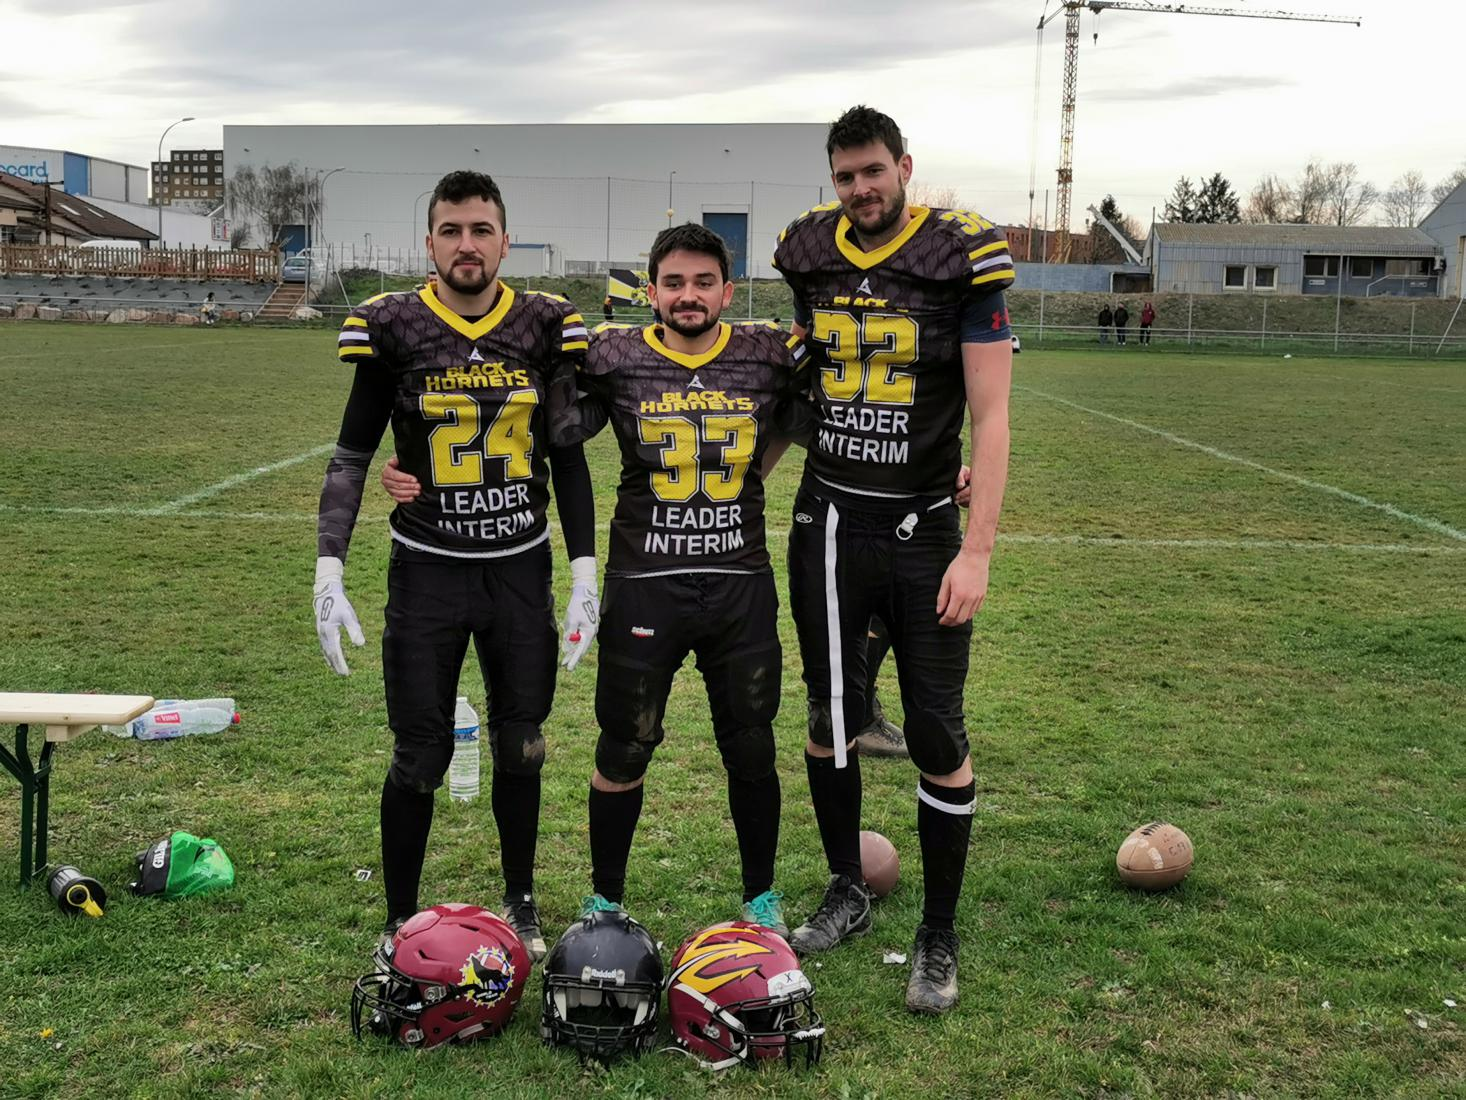 premier match entente black hornets - poséidons